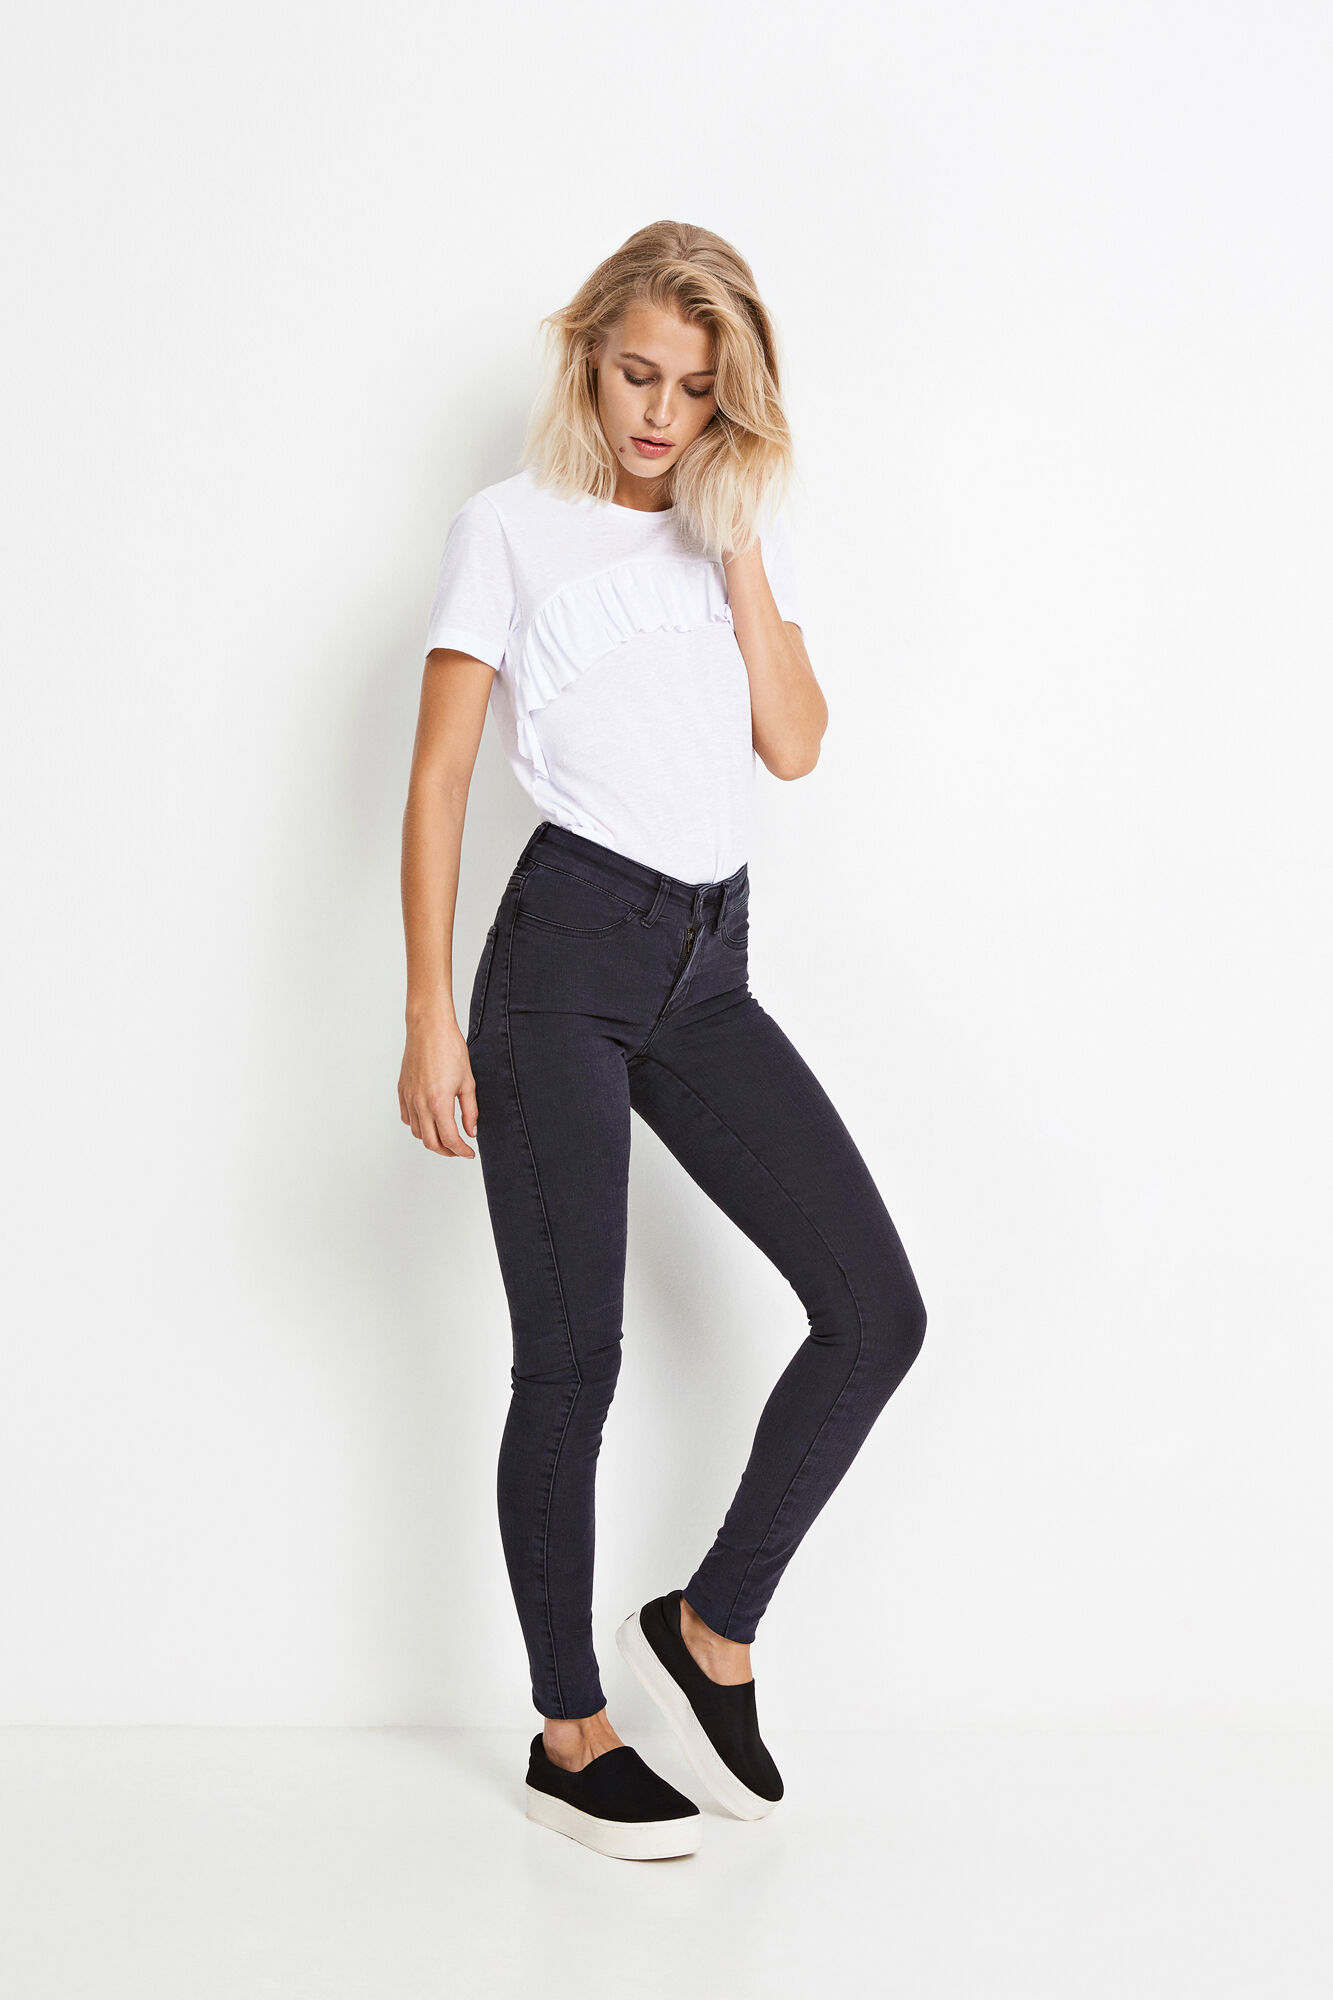 ENBLAIR JEANS WORN BLACK 6292